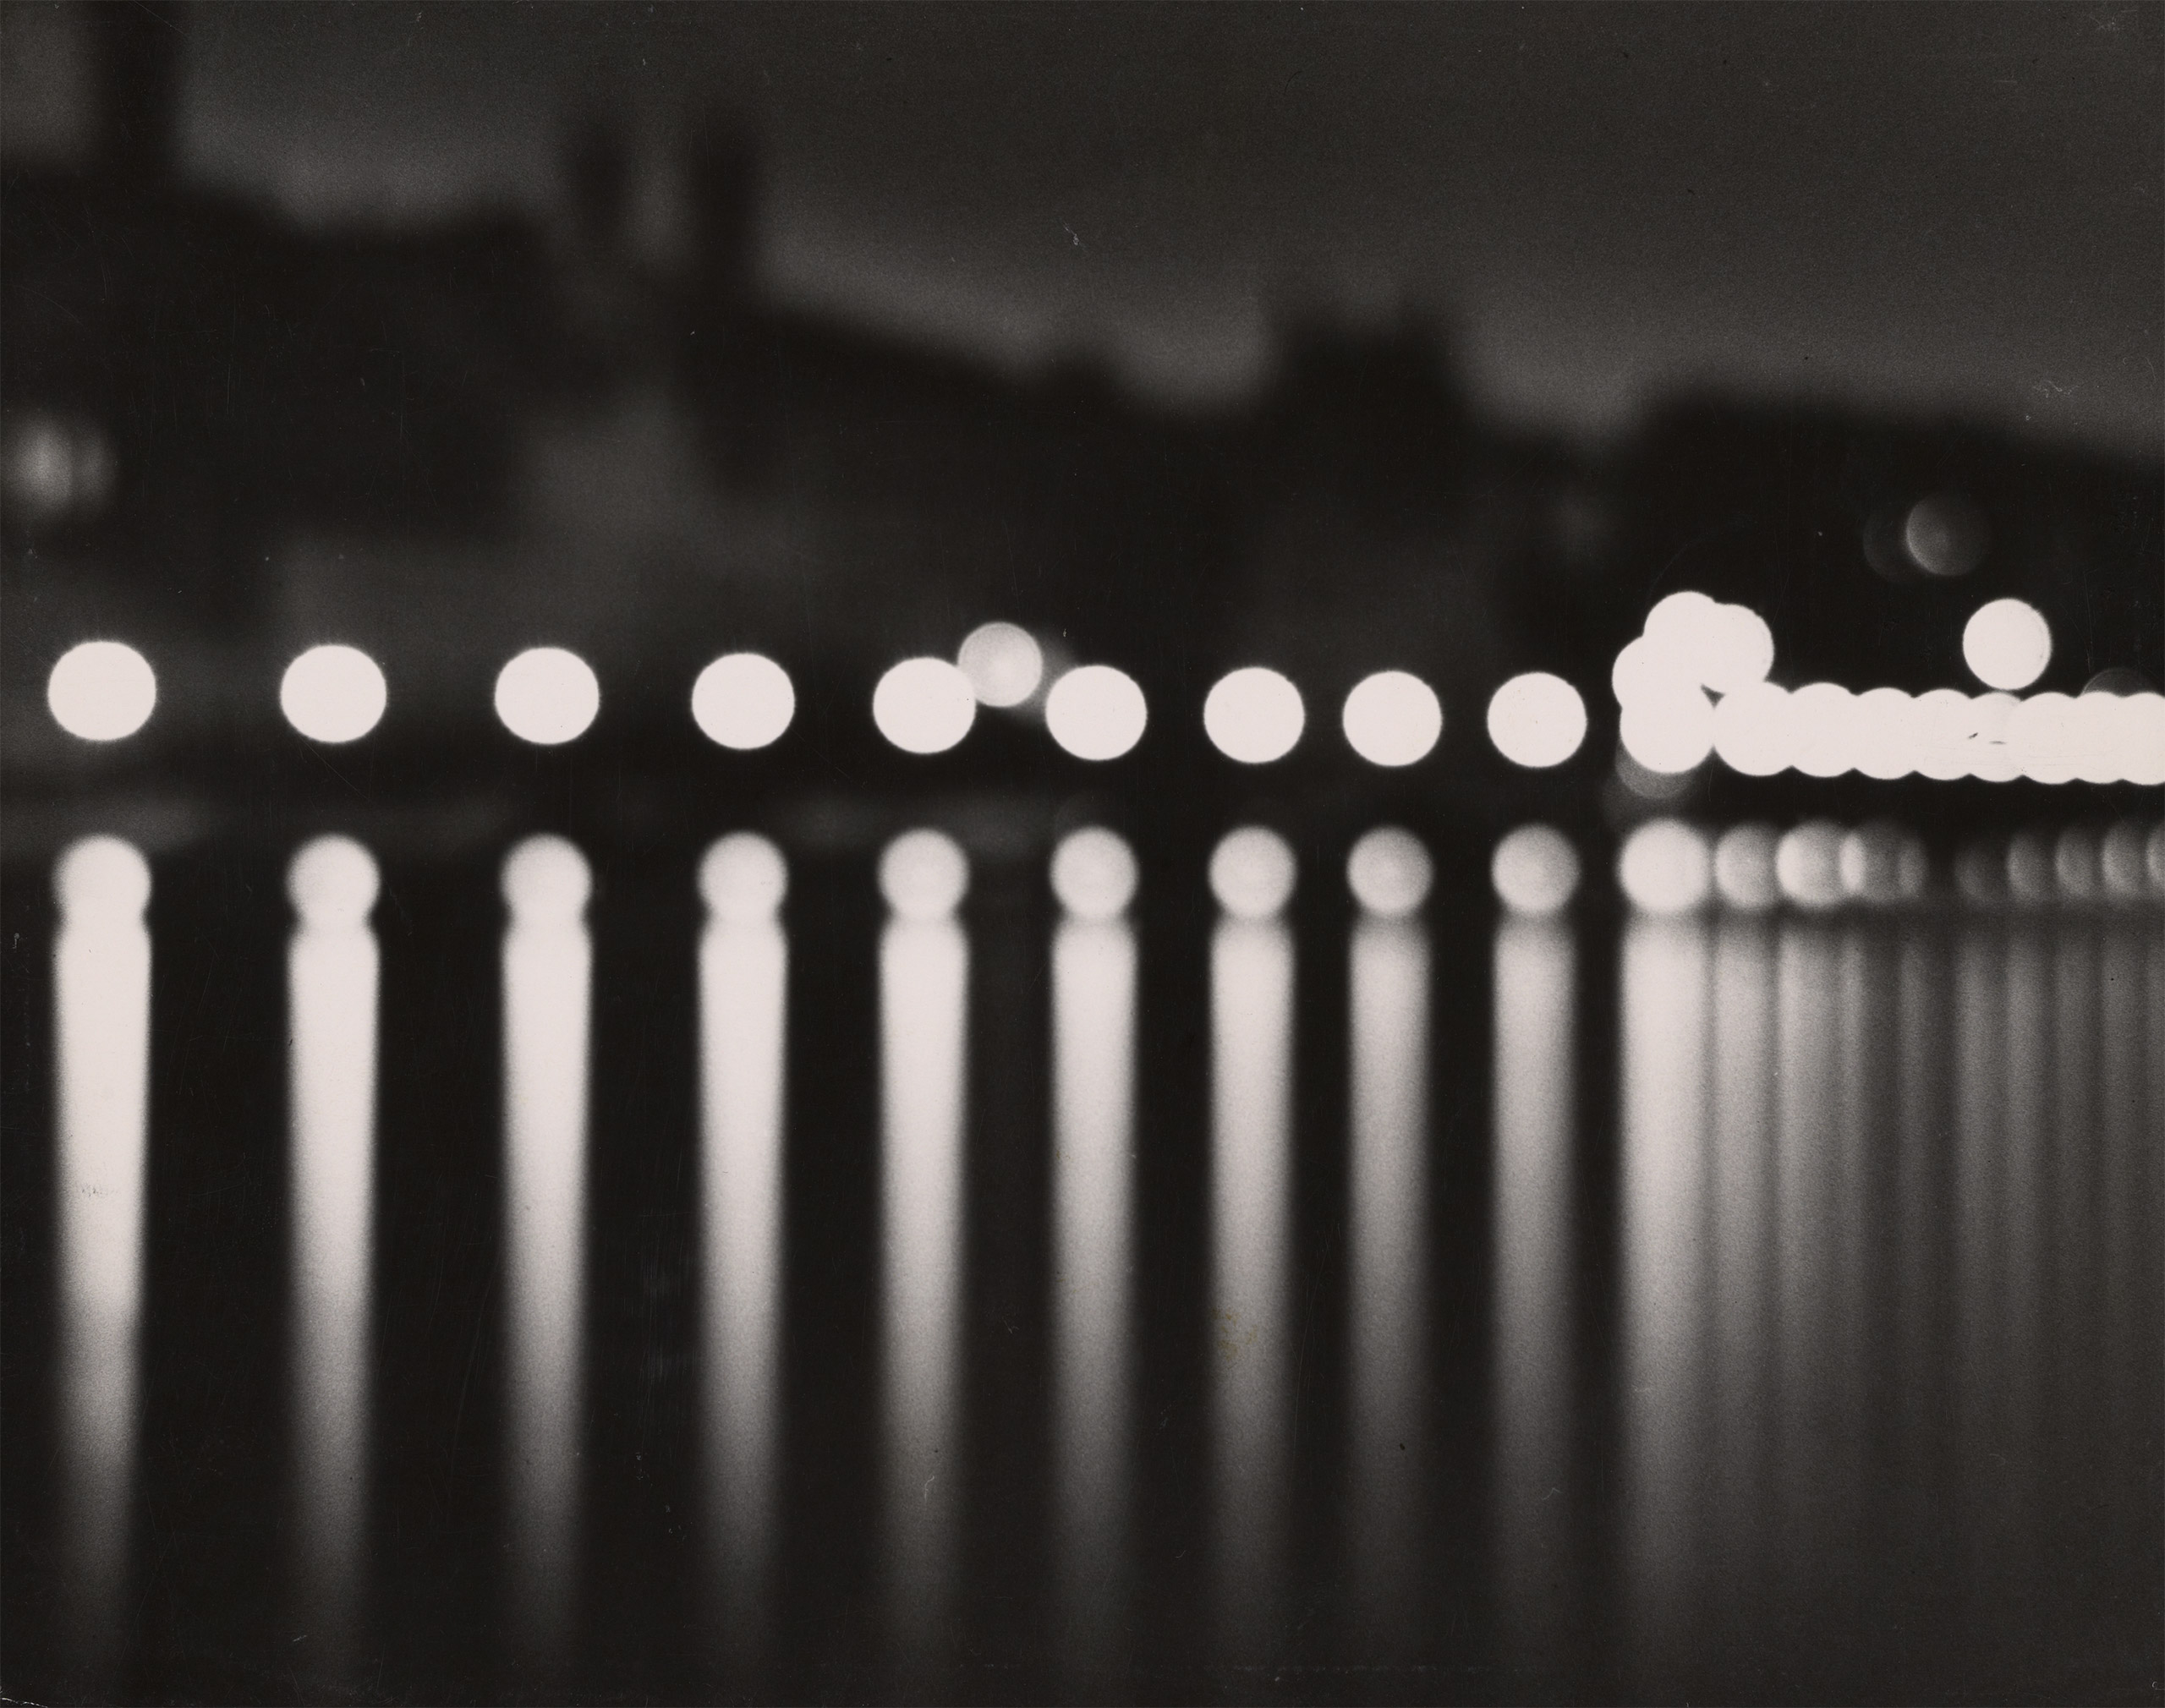 Stockholm (at night with circular lights), 1937© Estate of Gertrud E. Feininger / The J. Paul Getty Museum, Los Angeles, Gift of the Estate of Gertrud E.                               (Wysse) Feininger